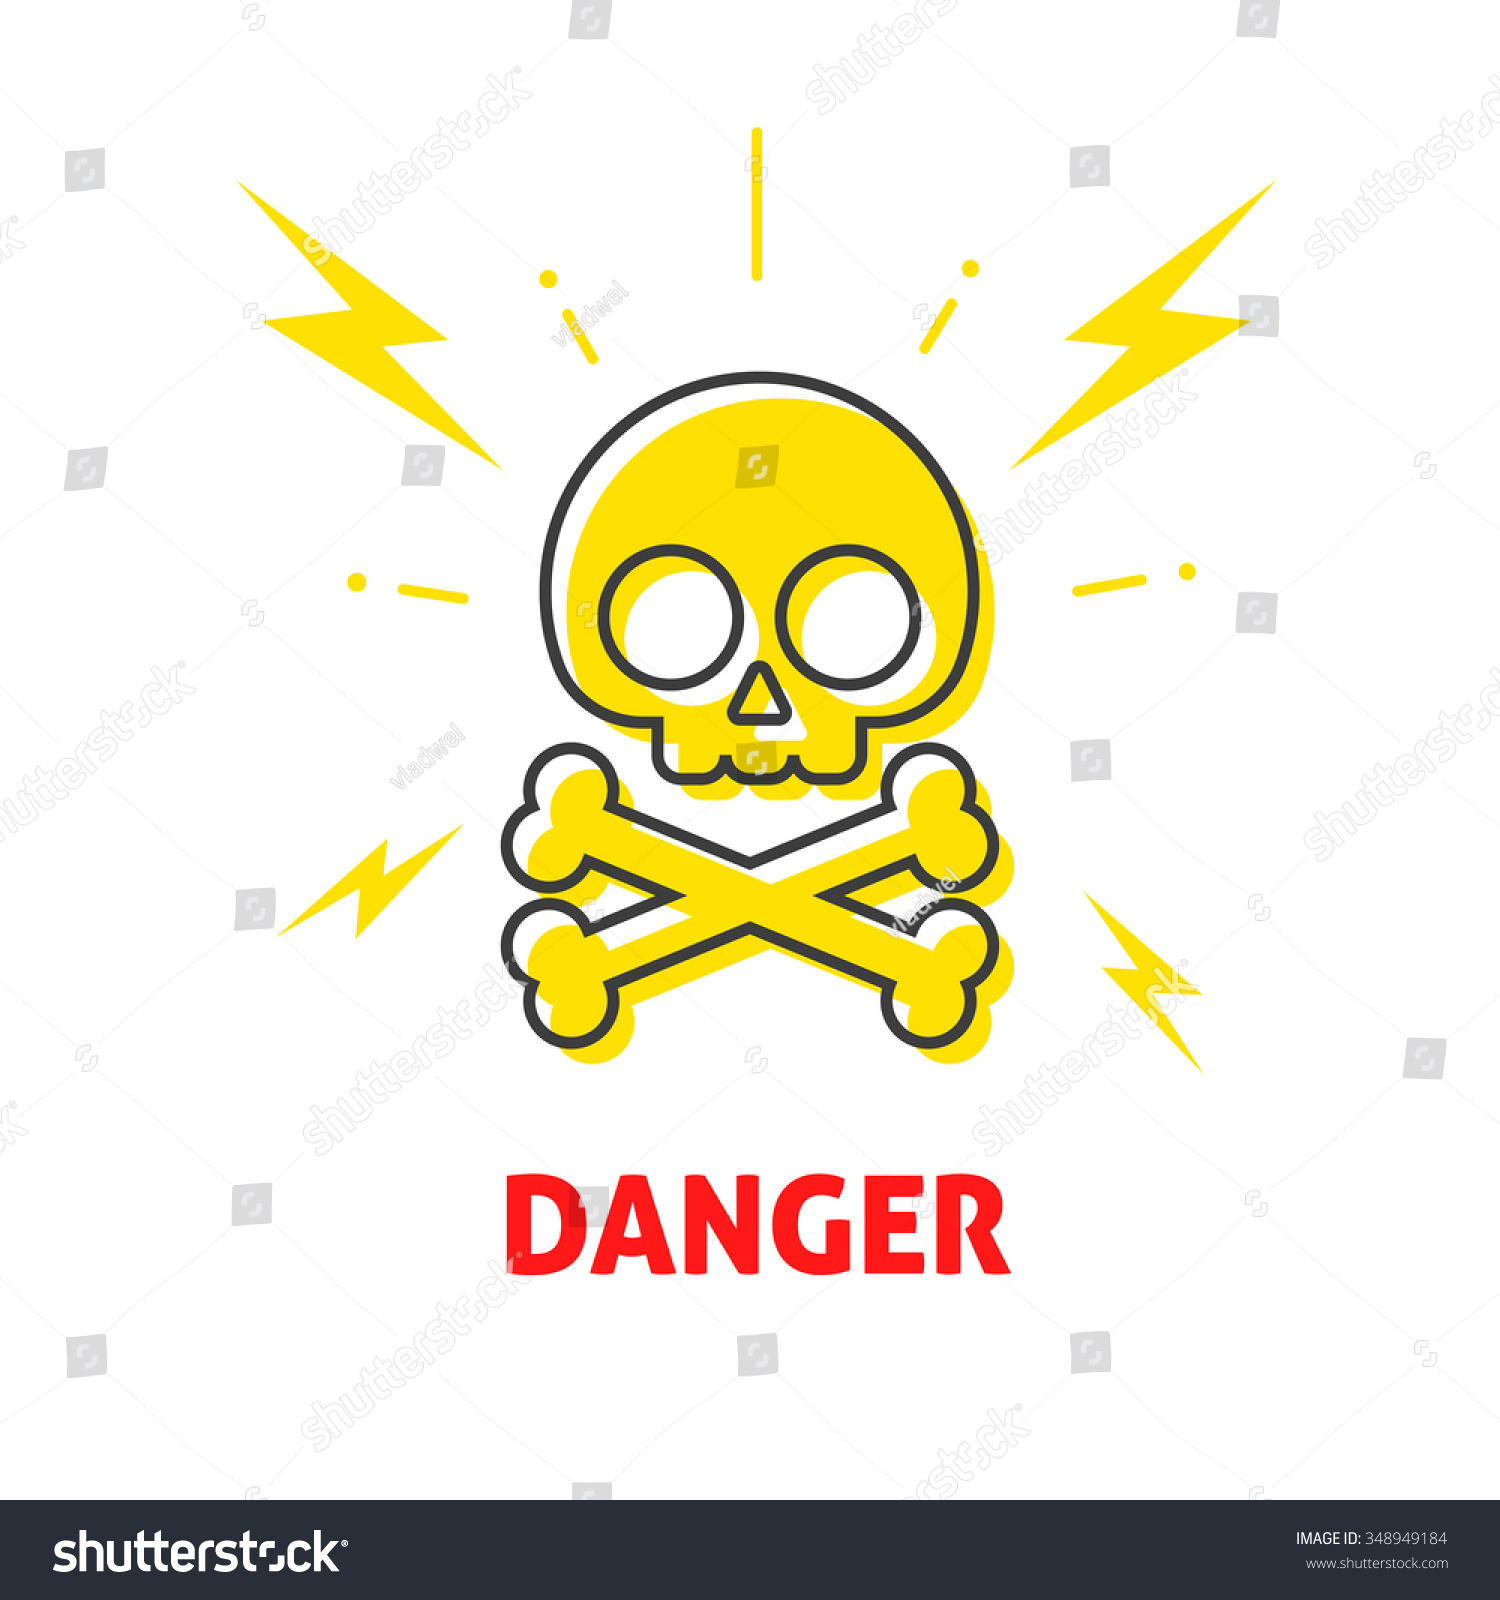 Electrical Shock Hazard Sign Badge Electricity Protection Warning Danger Sticker High Potential Flat Icon